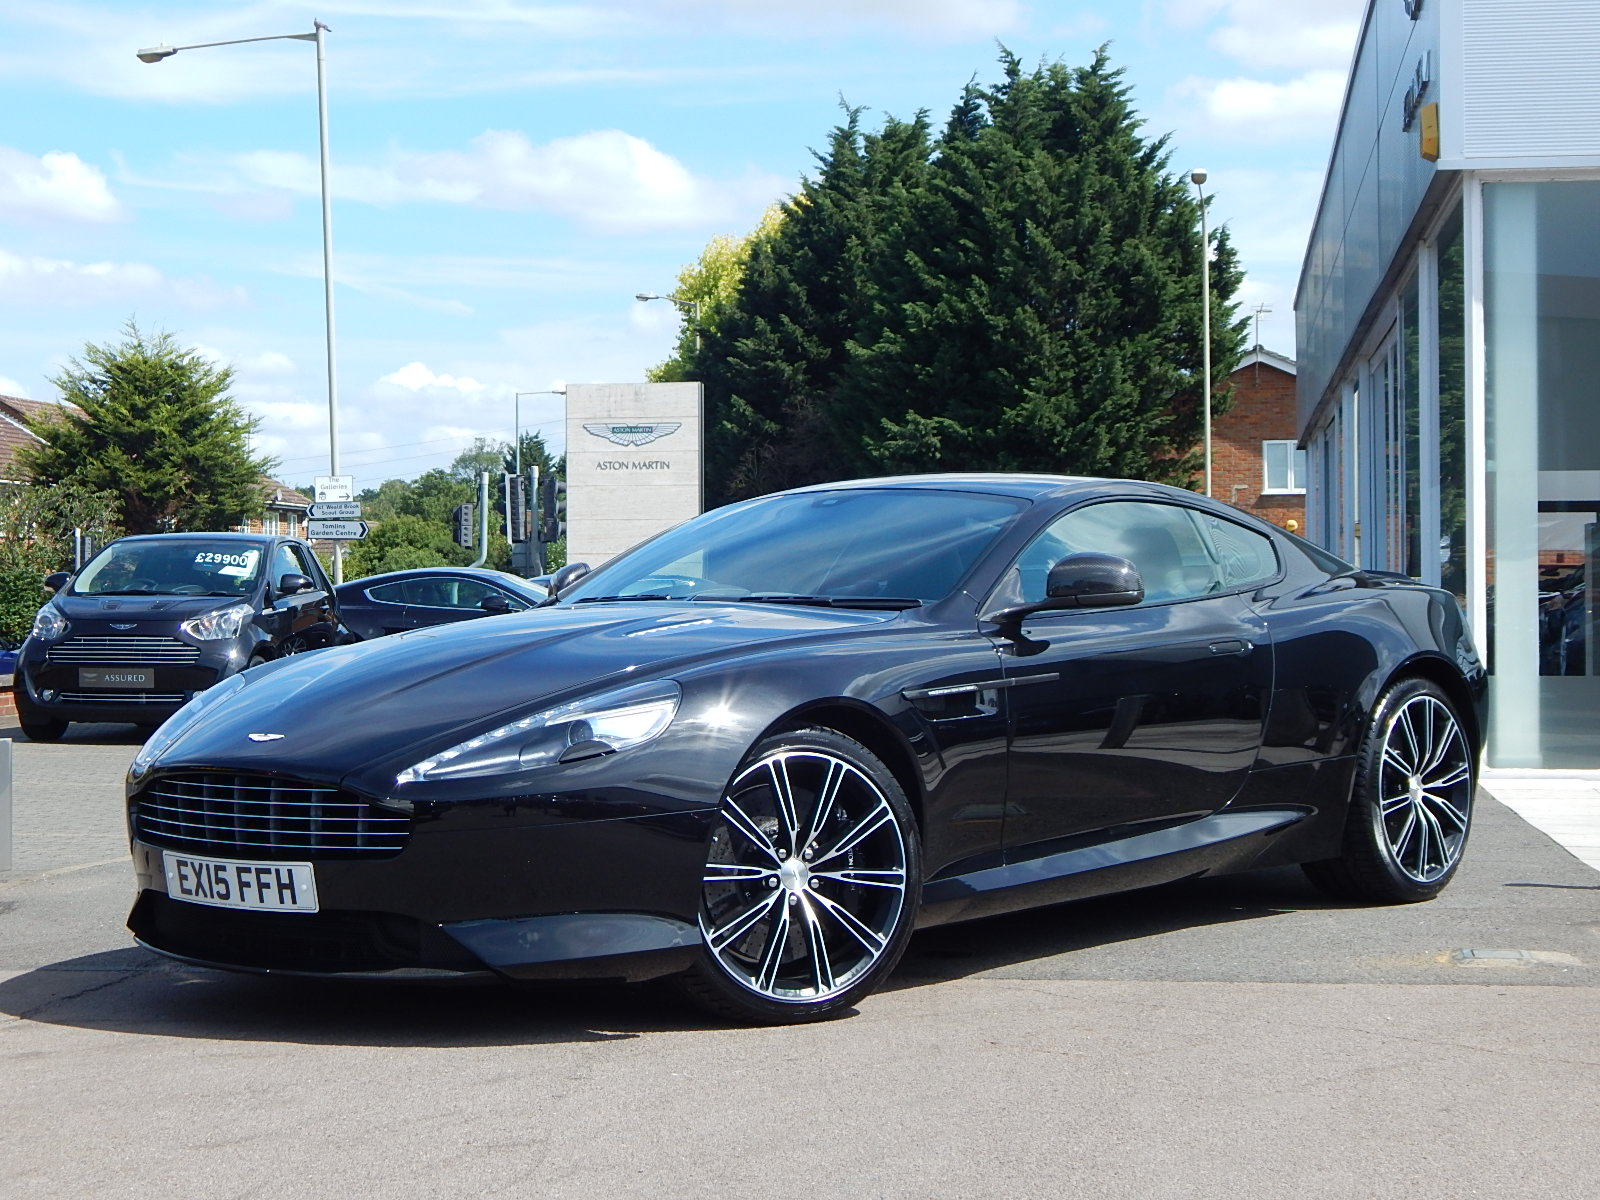 Aston Martin DB9 V12 2dr Touchtronic 5.9 Automatic 3 door Coupe (2015) image